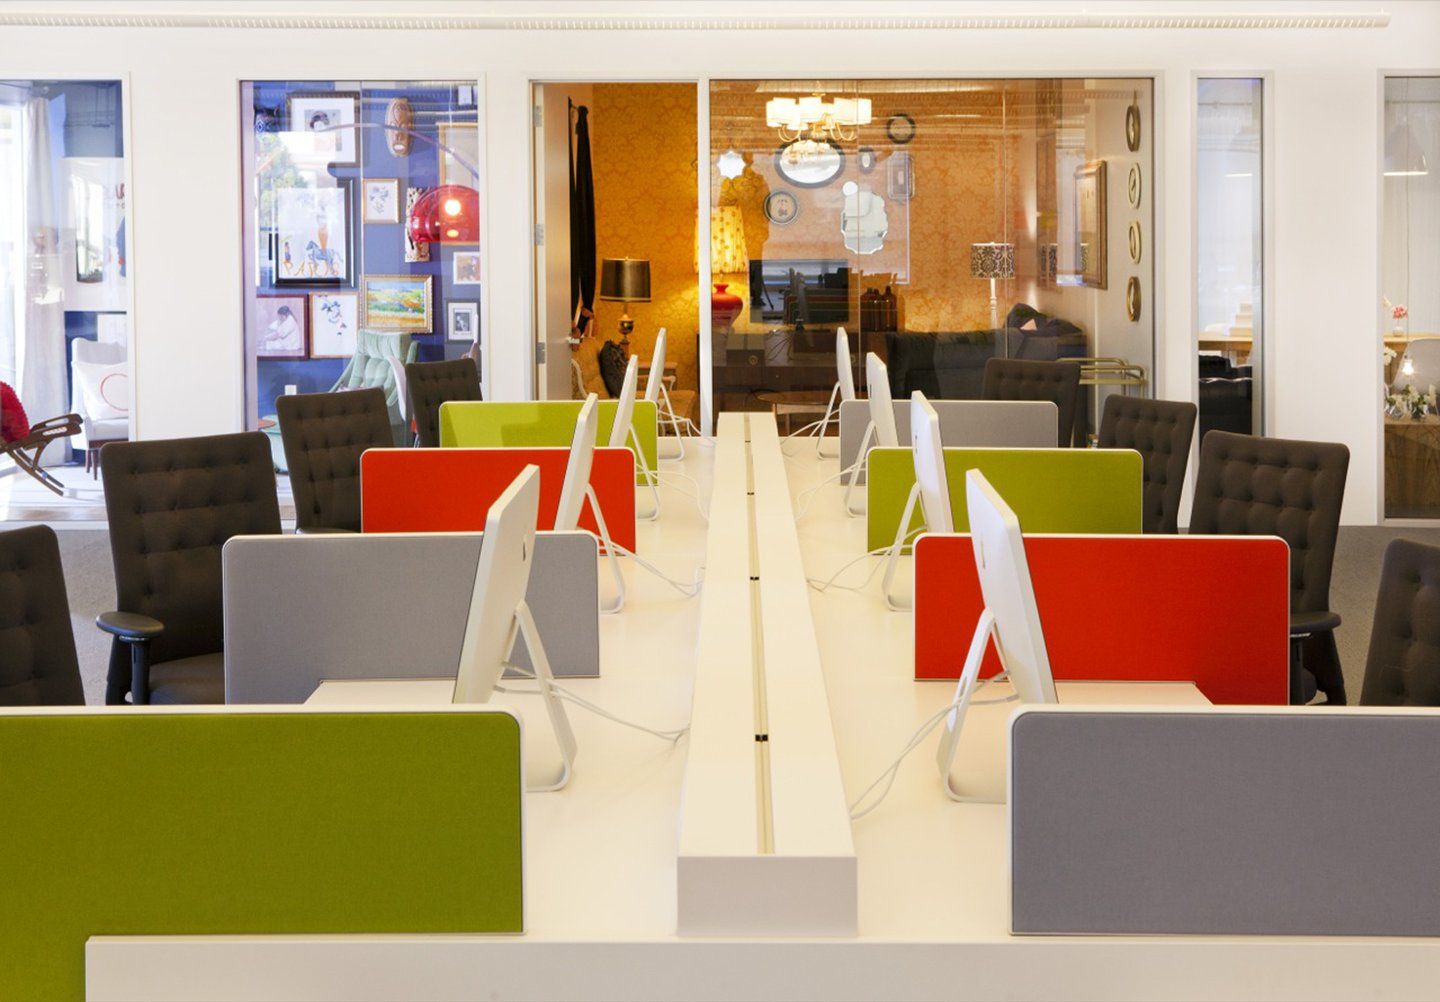 airbnb-cool-office-design-office-interiors-open-plan-office-looking-to-meeting-rooms.jpg